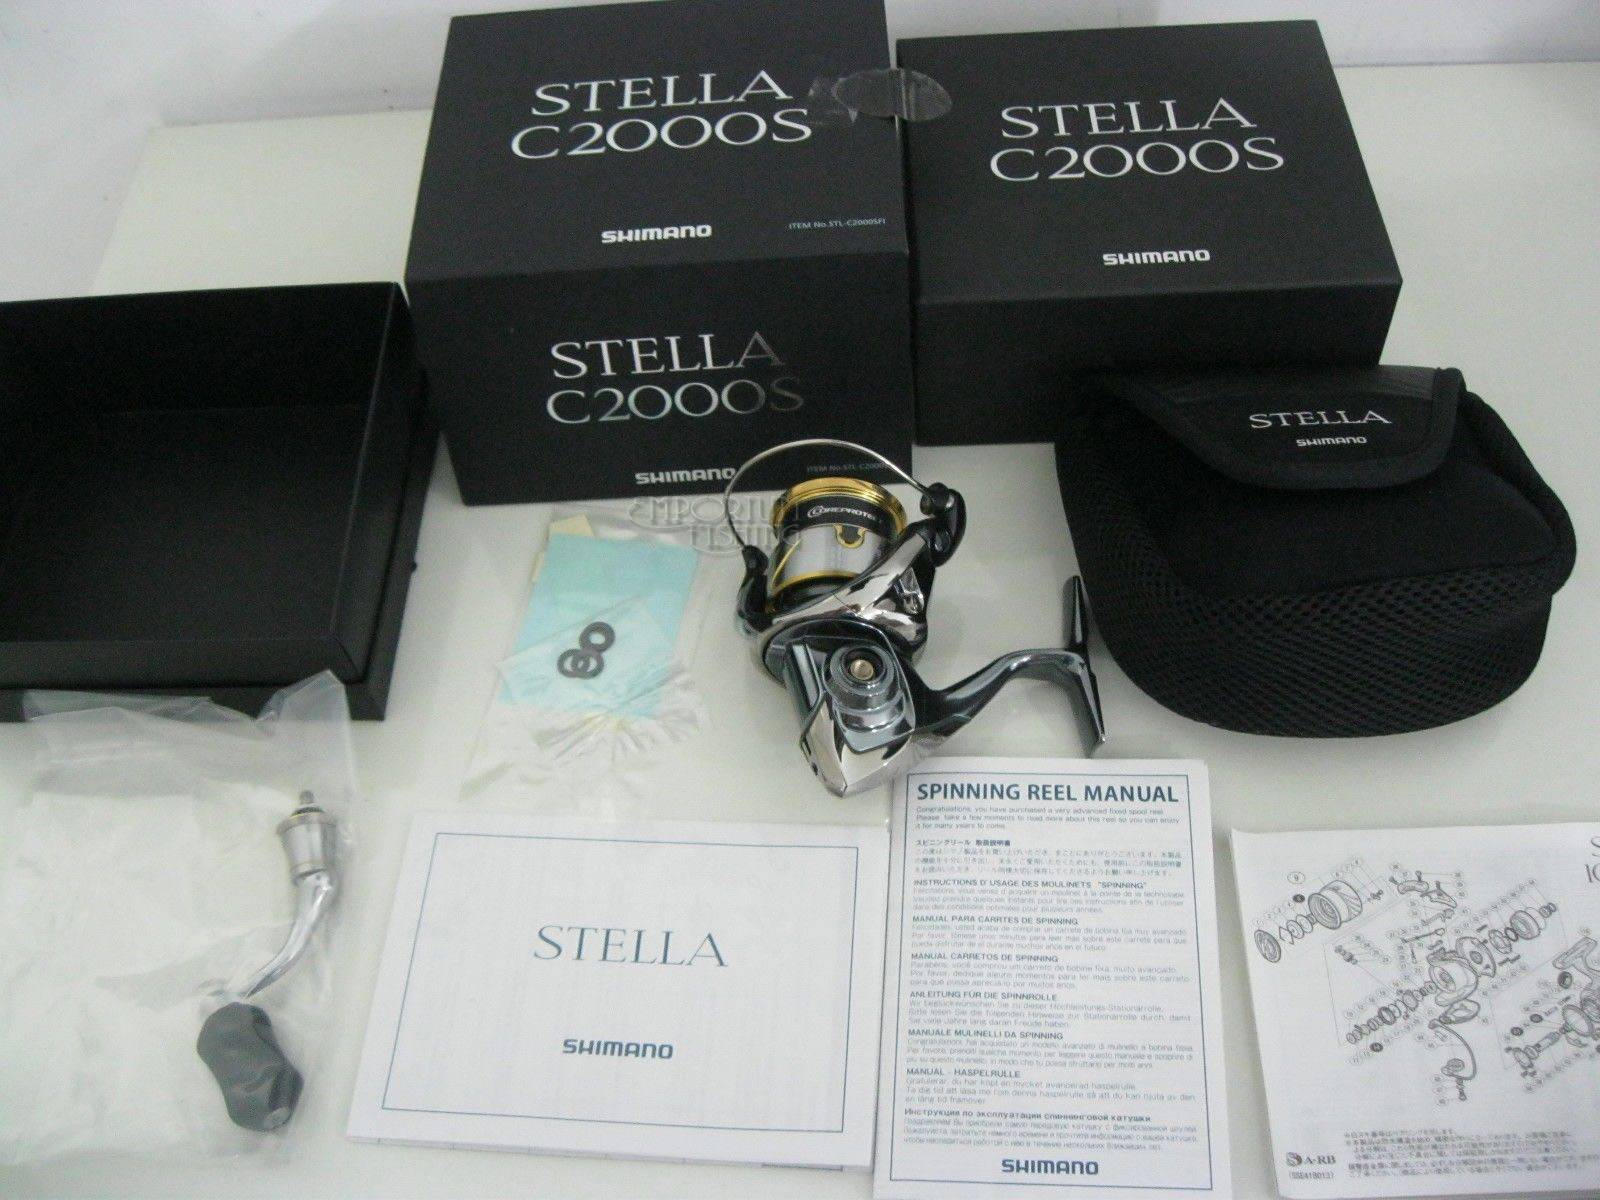 New Shimano STELLA C2000S Spinning Reel 2014